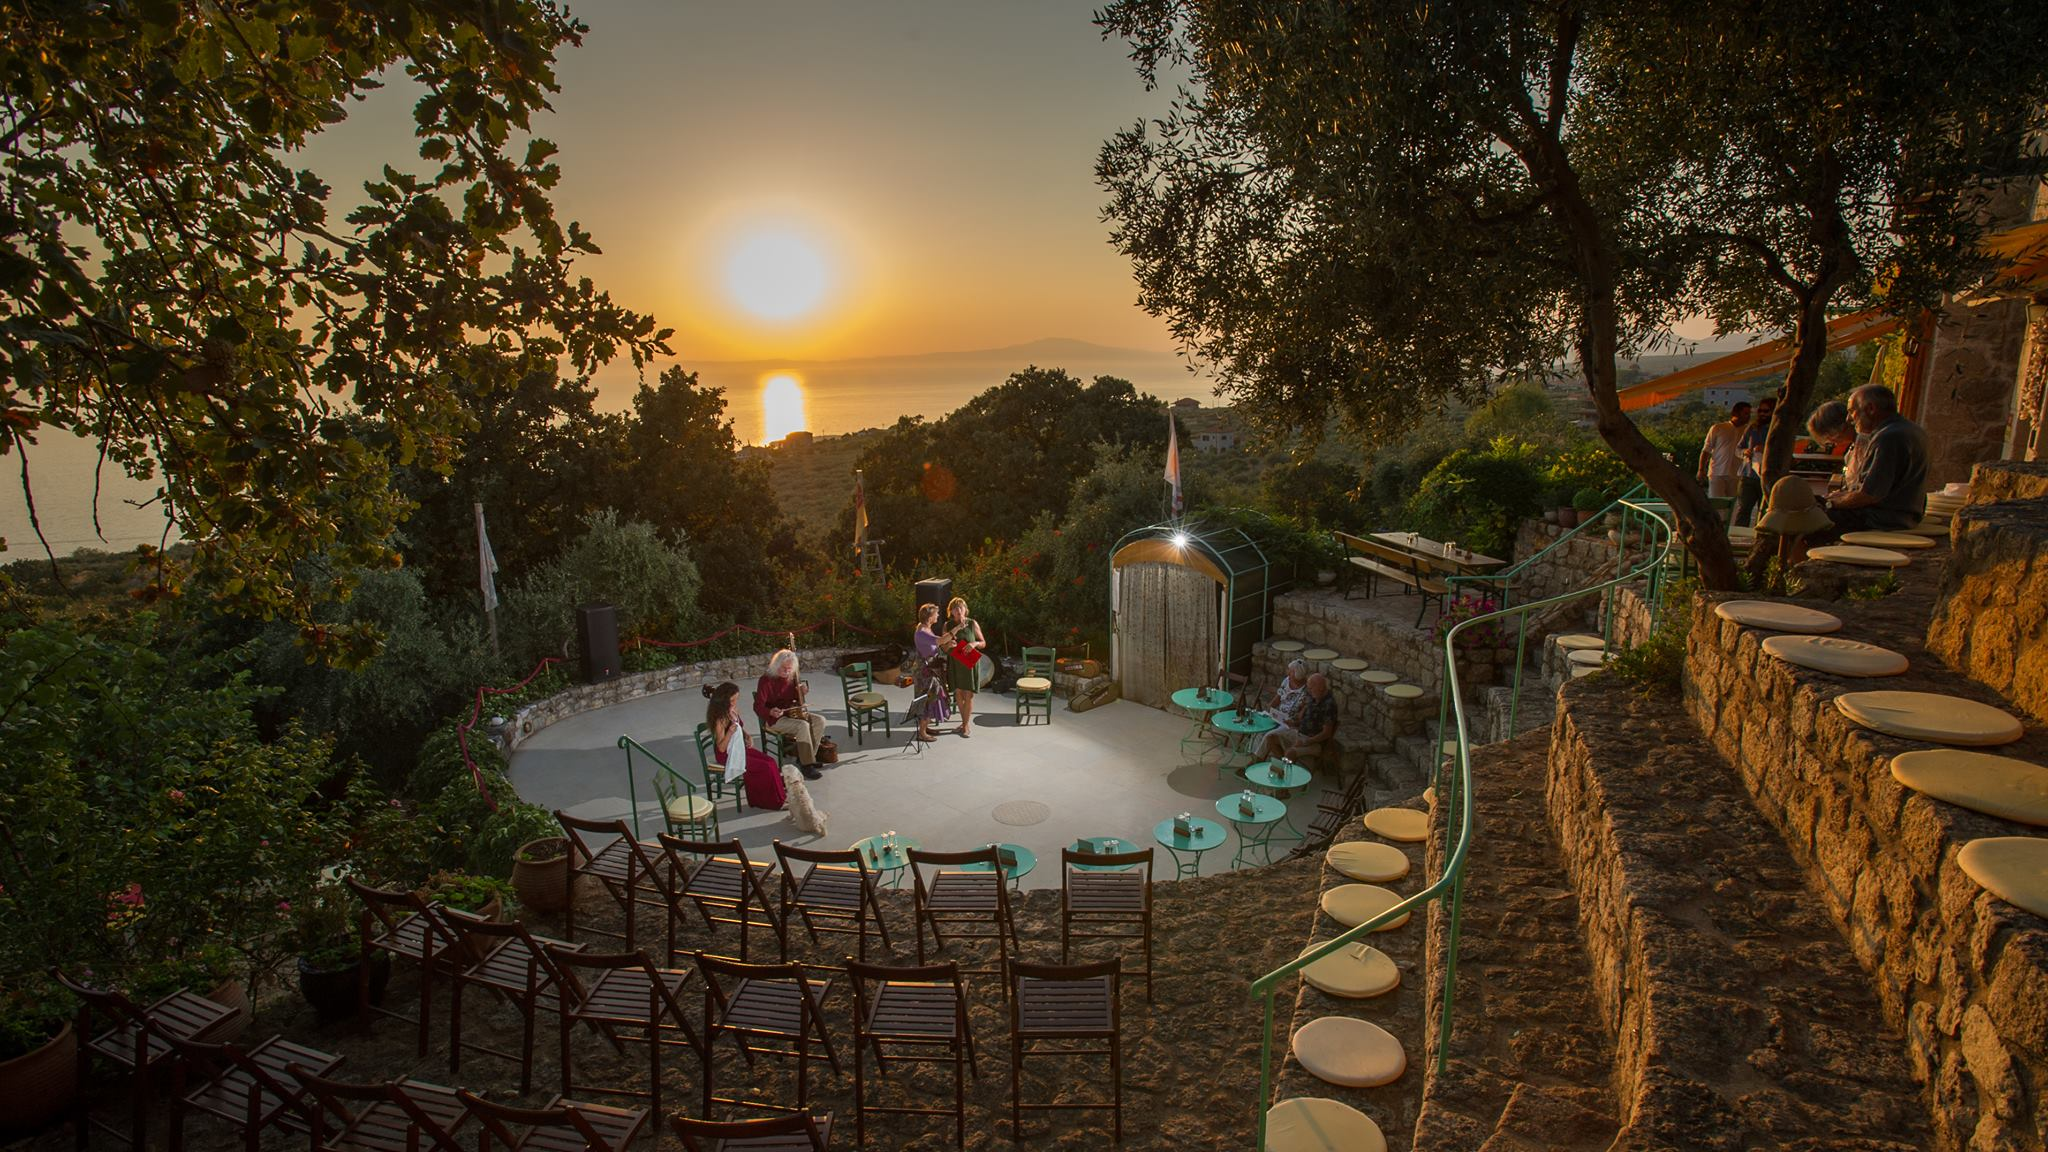 11th Music Summer 2019Summer Concerts in the evening twilight under the Mediterranean sky -